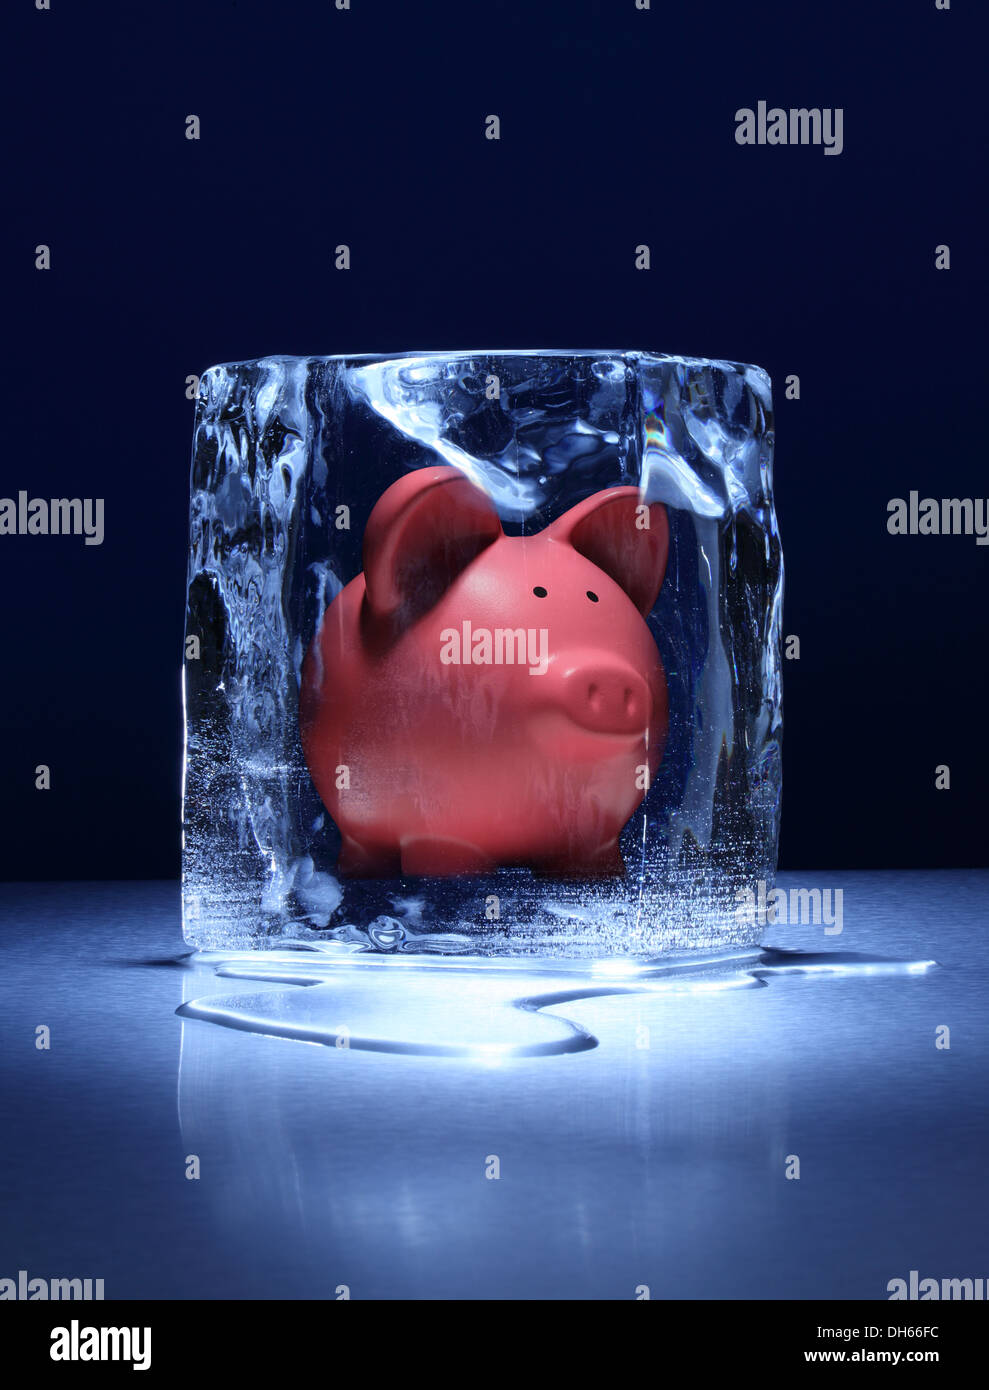 A pink money piggy bank frozen in a clear block of ice - Stock Image